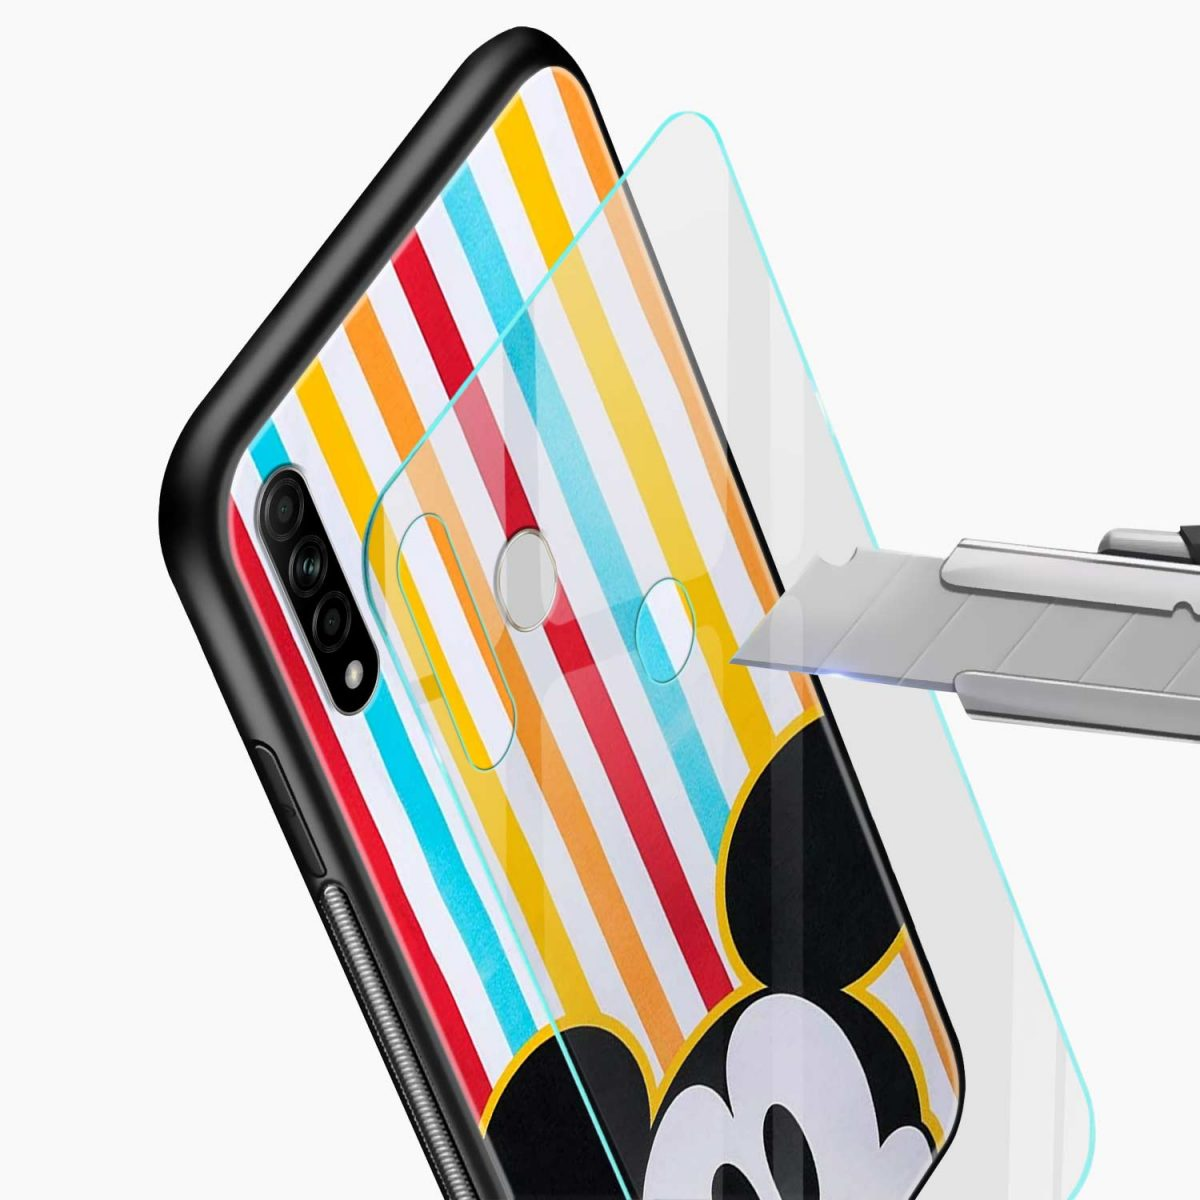 rigid spy mickey mouse glass view oppo a31 back cover